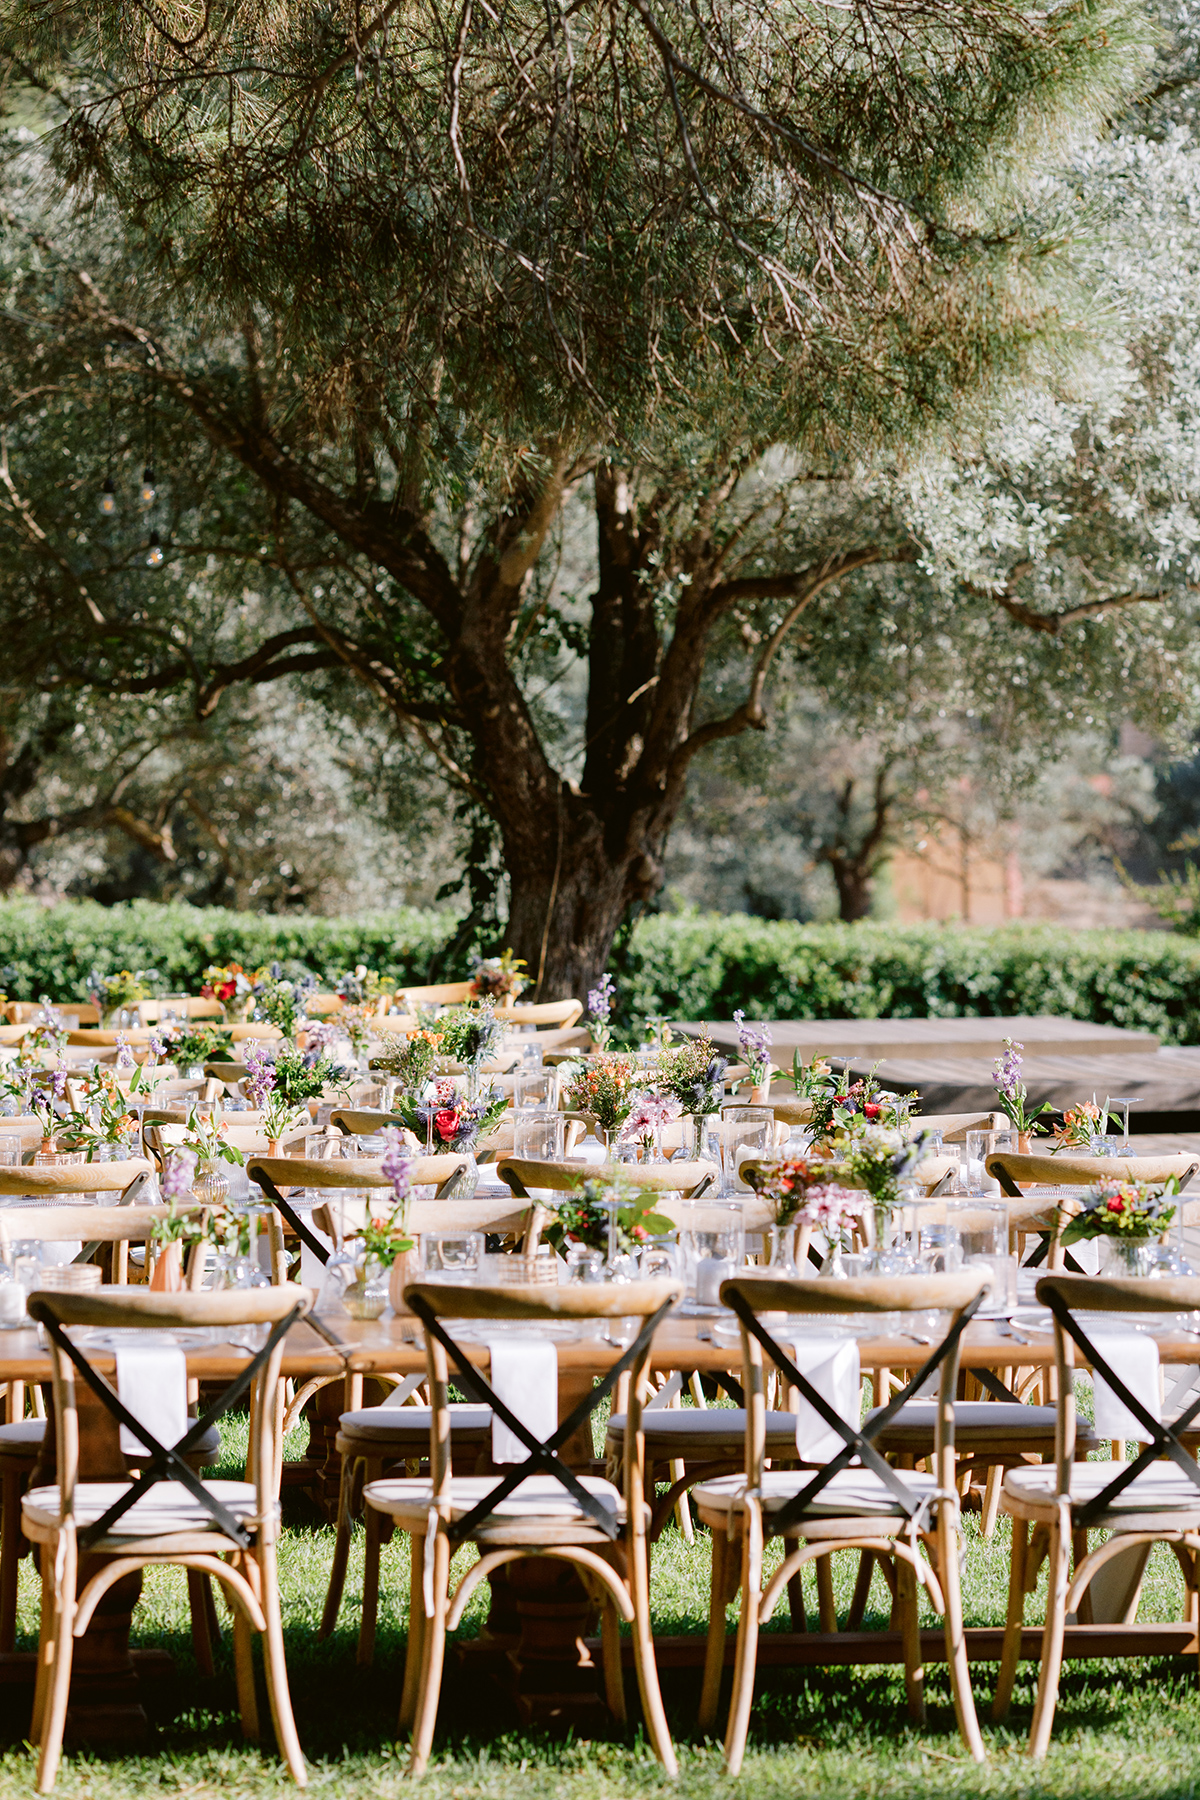 Getting Married in Cyprus?